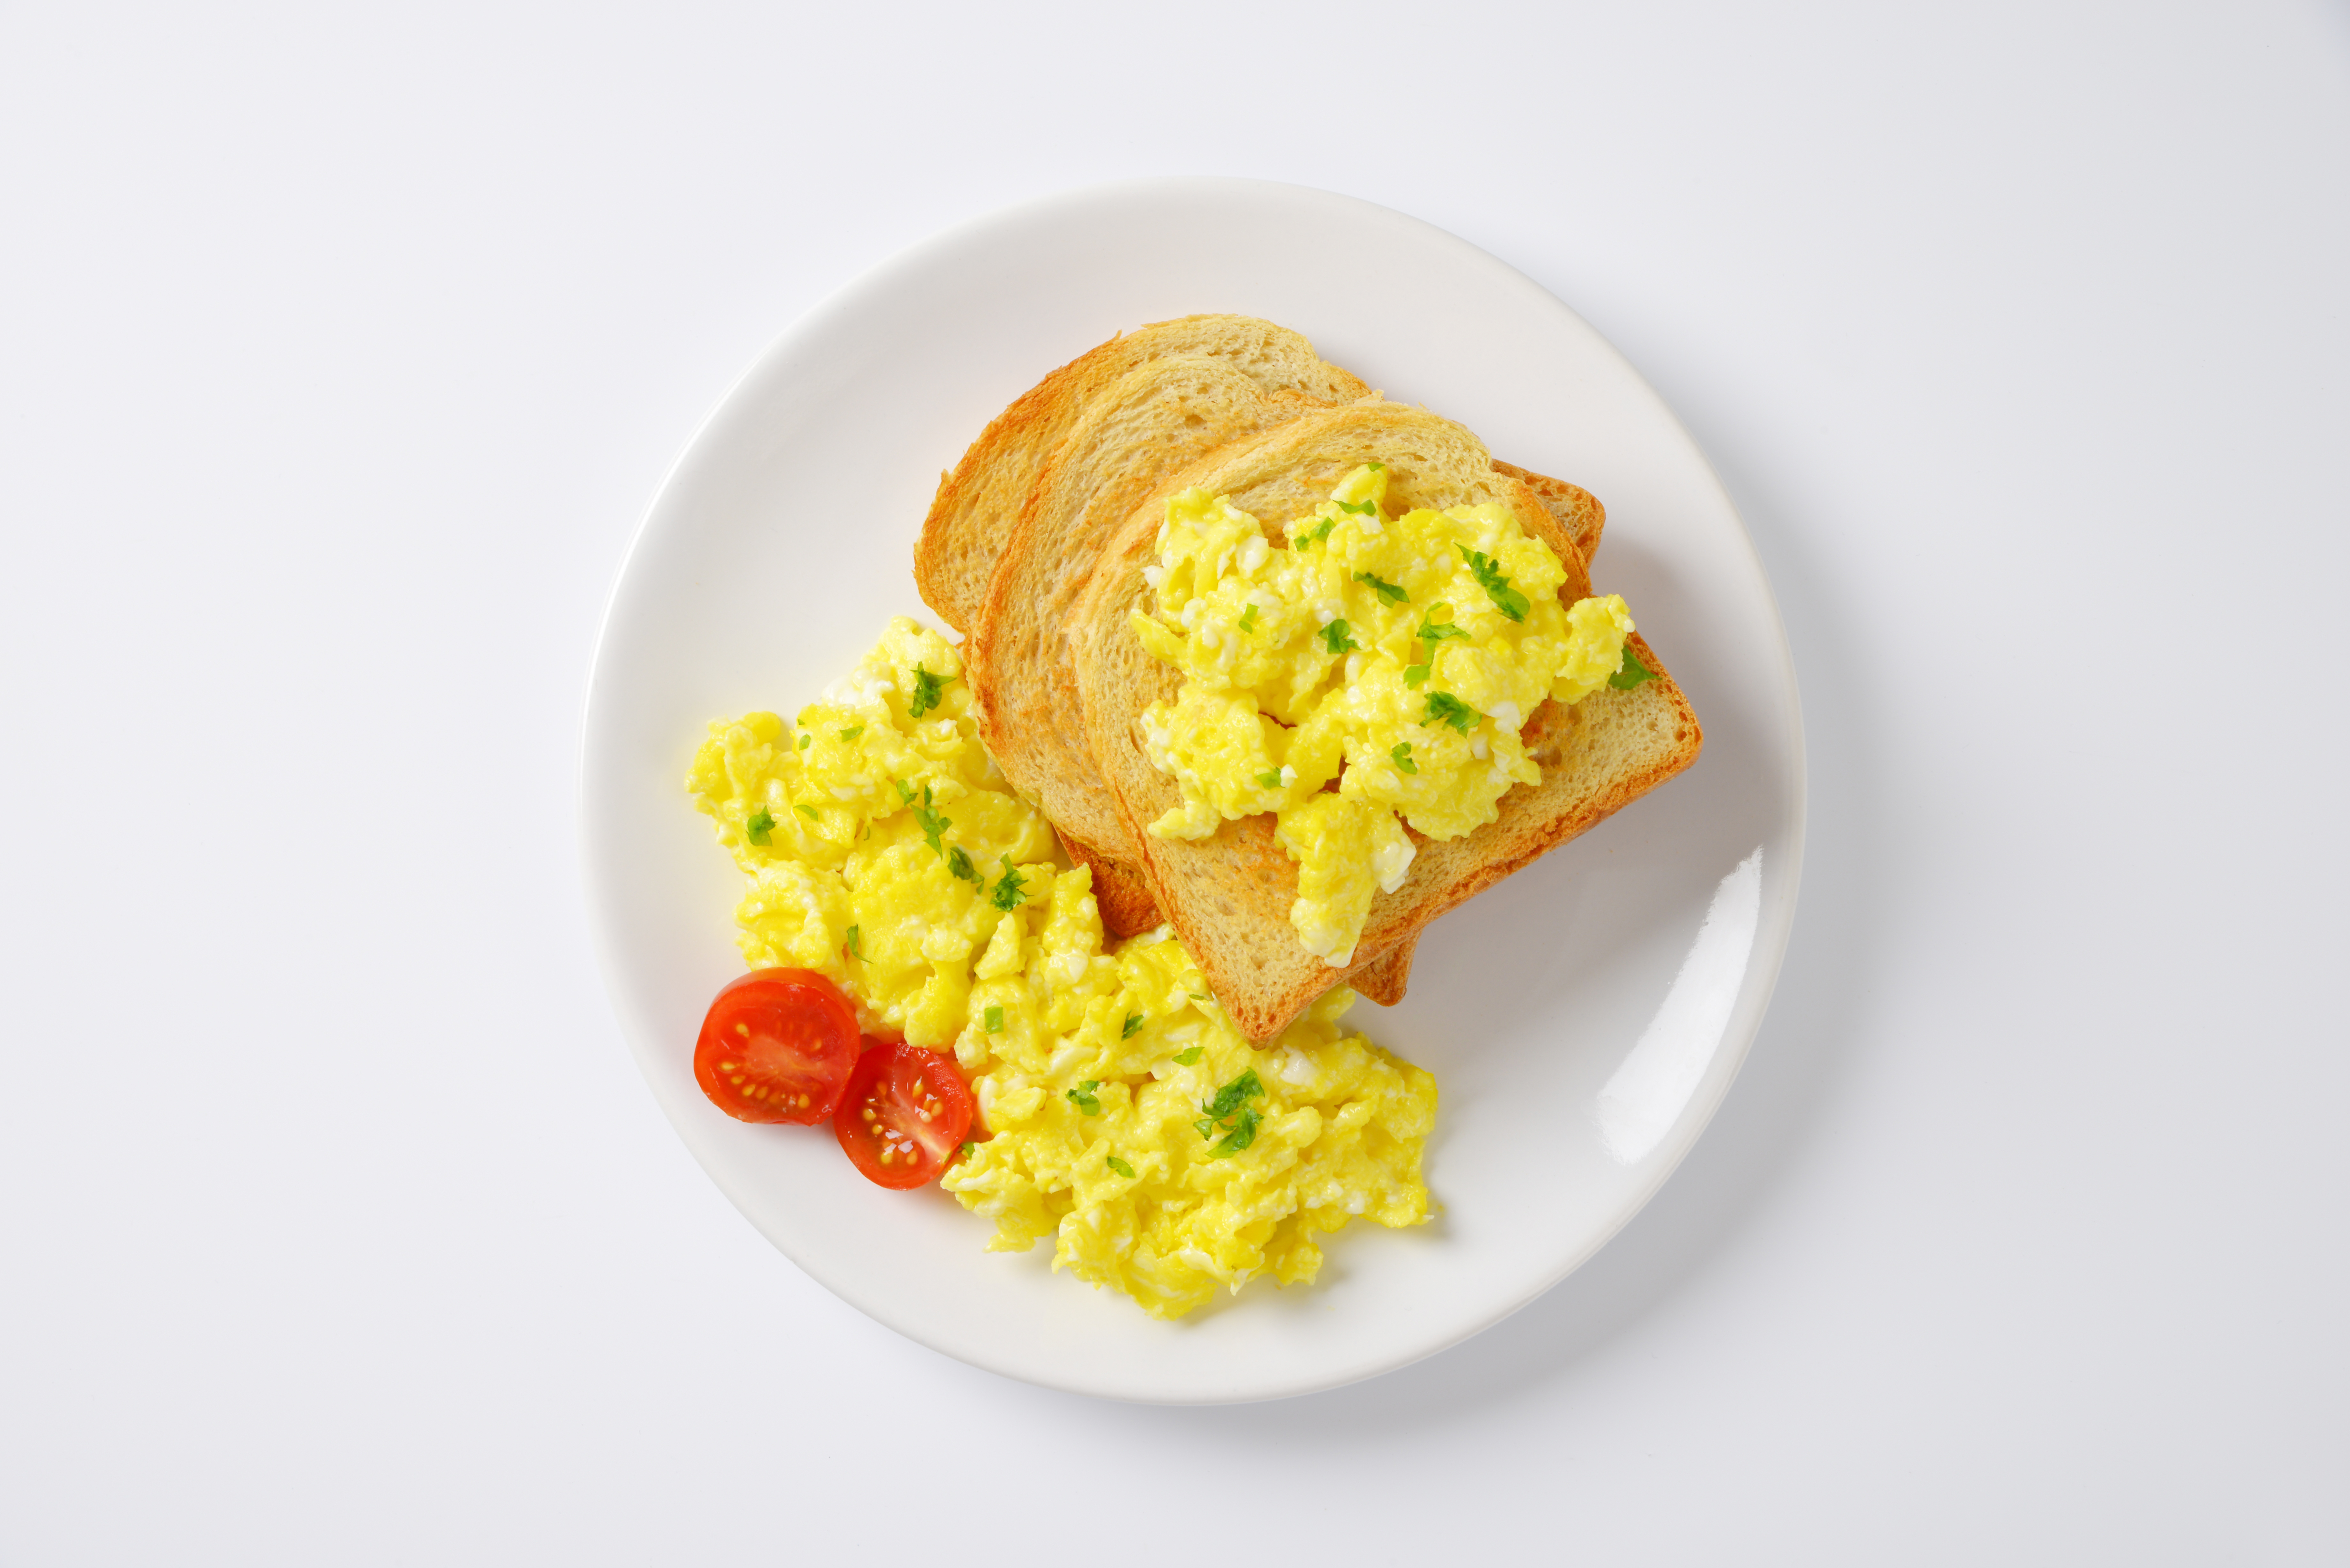 How Many Carbohydrates Are in Scrambled Eggs With Cheese & Peppers? |  Healthy Eating | SF Gate